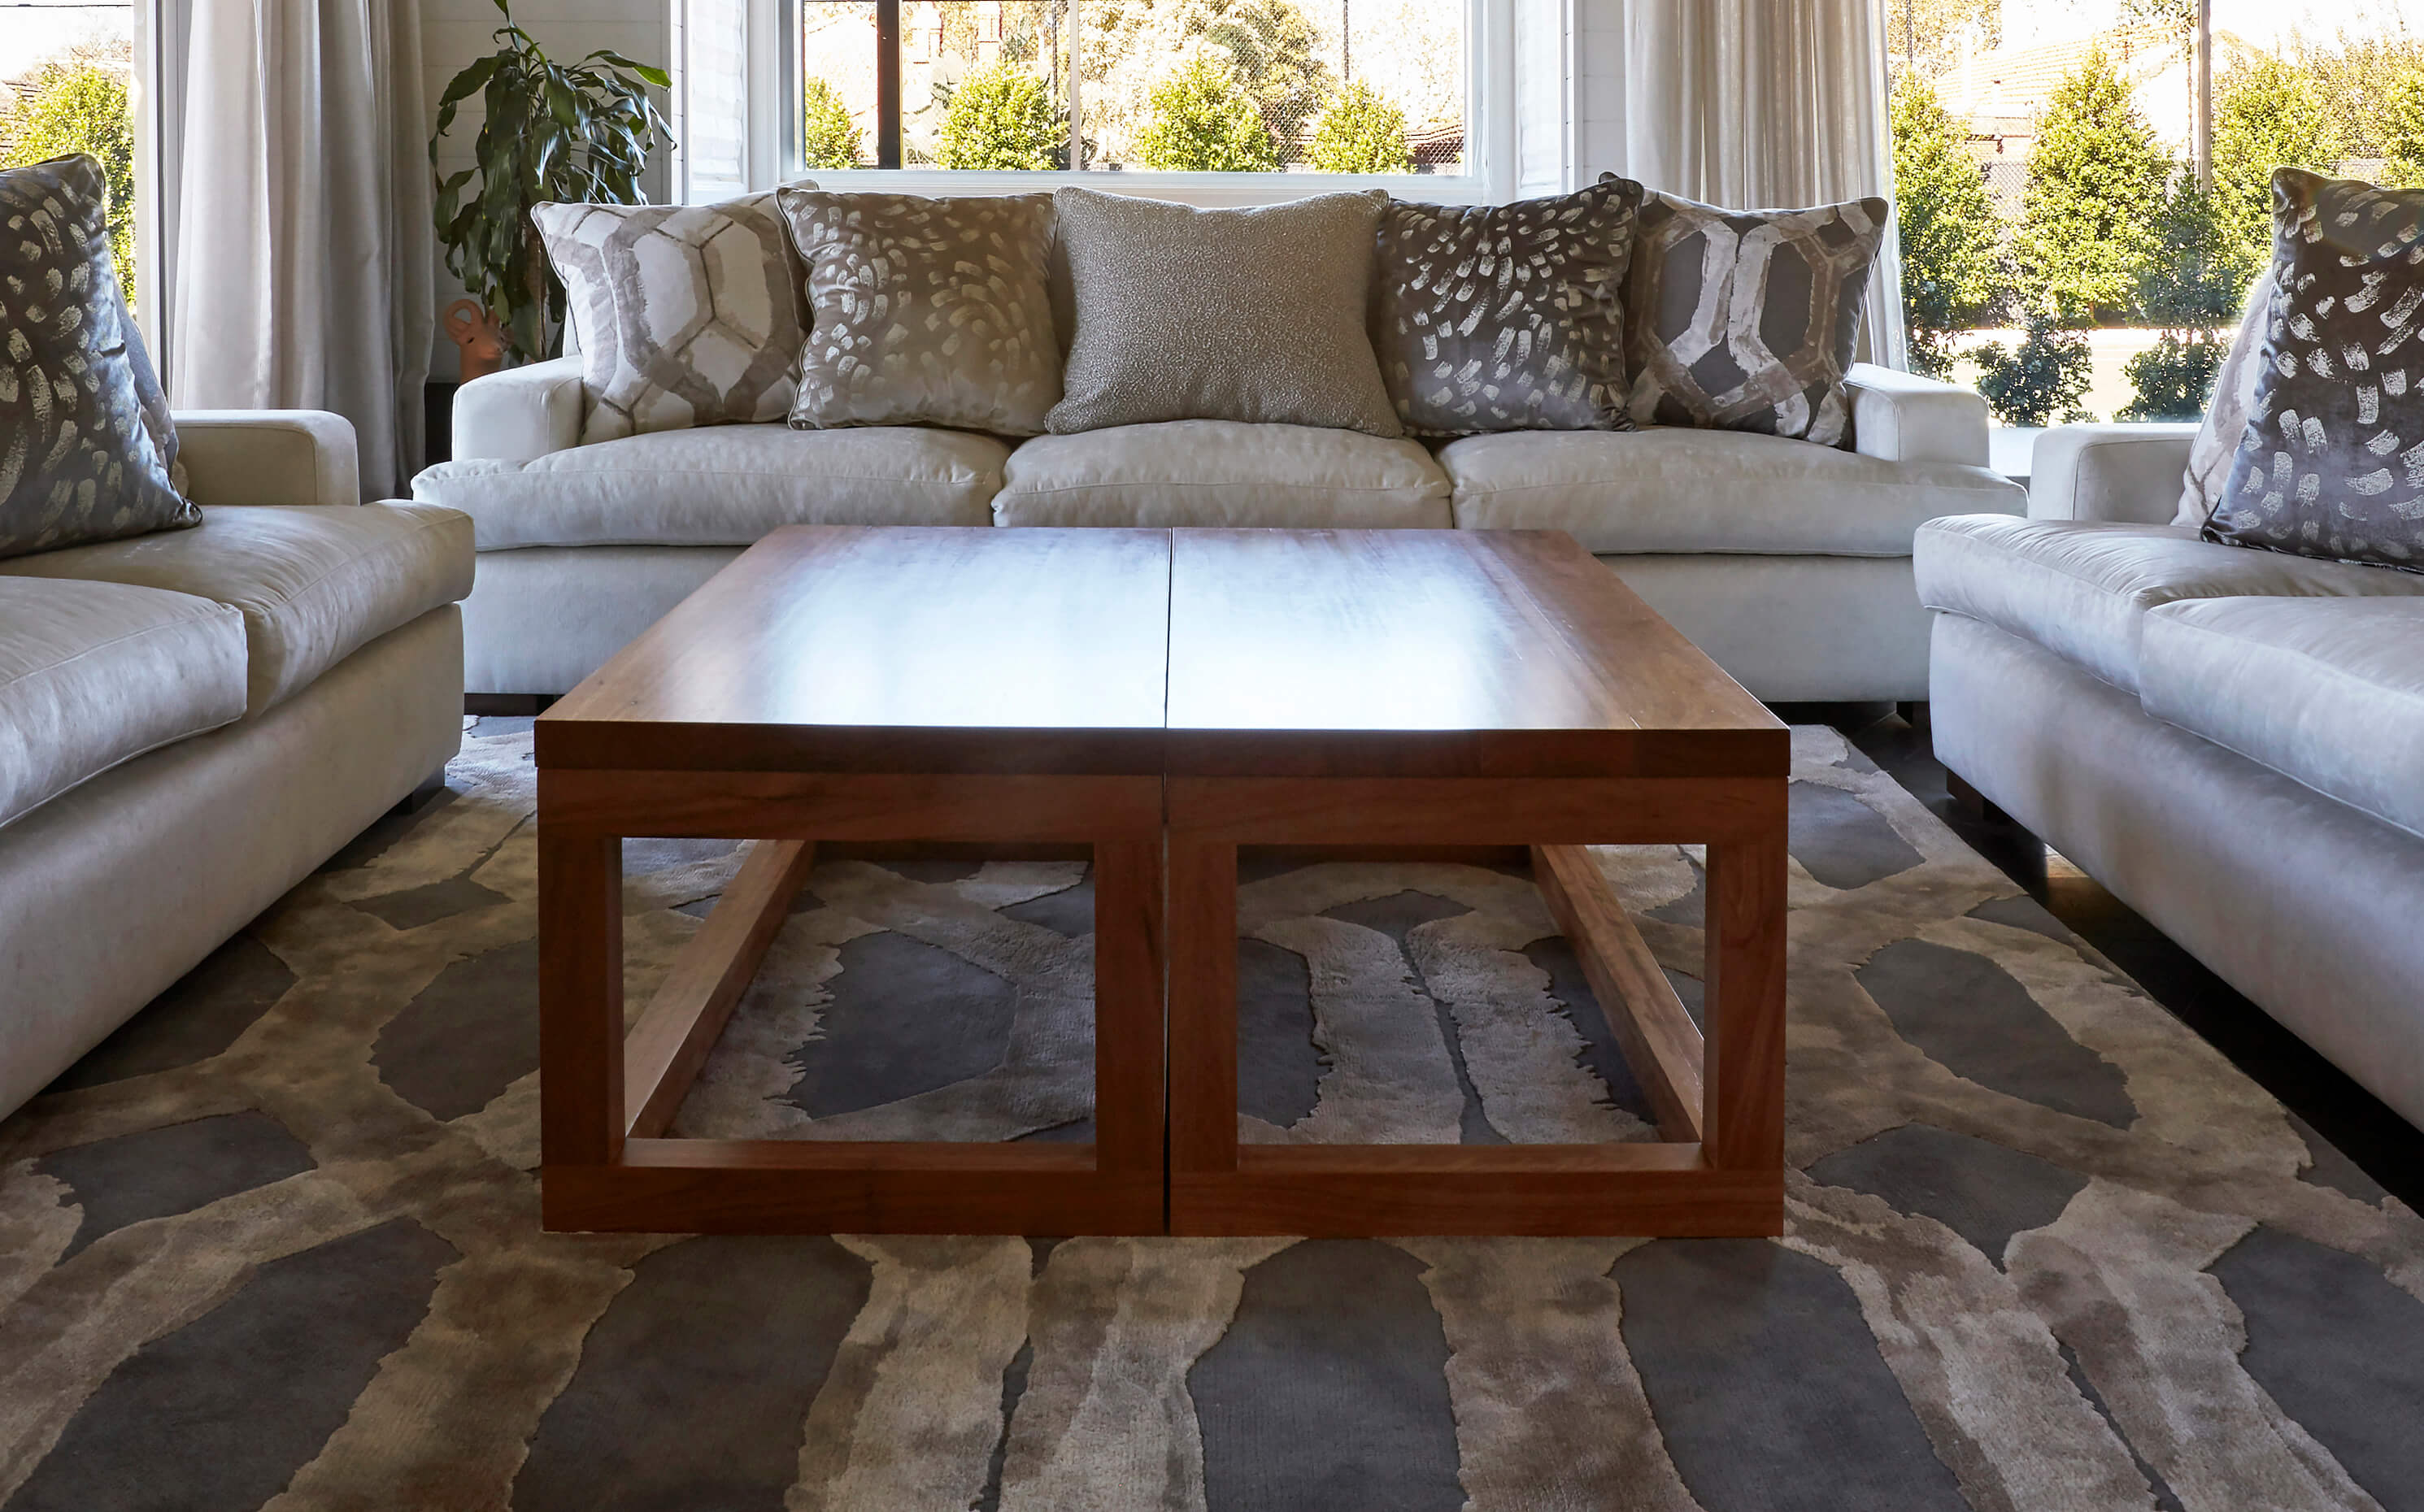 French-style Modern Coffee Table In Solid Blackbutt